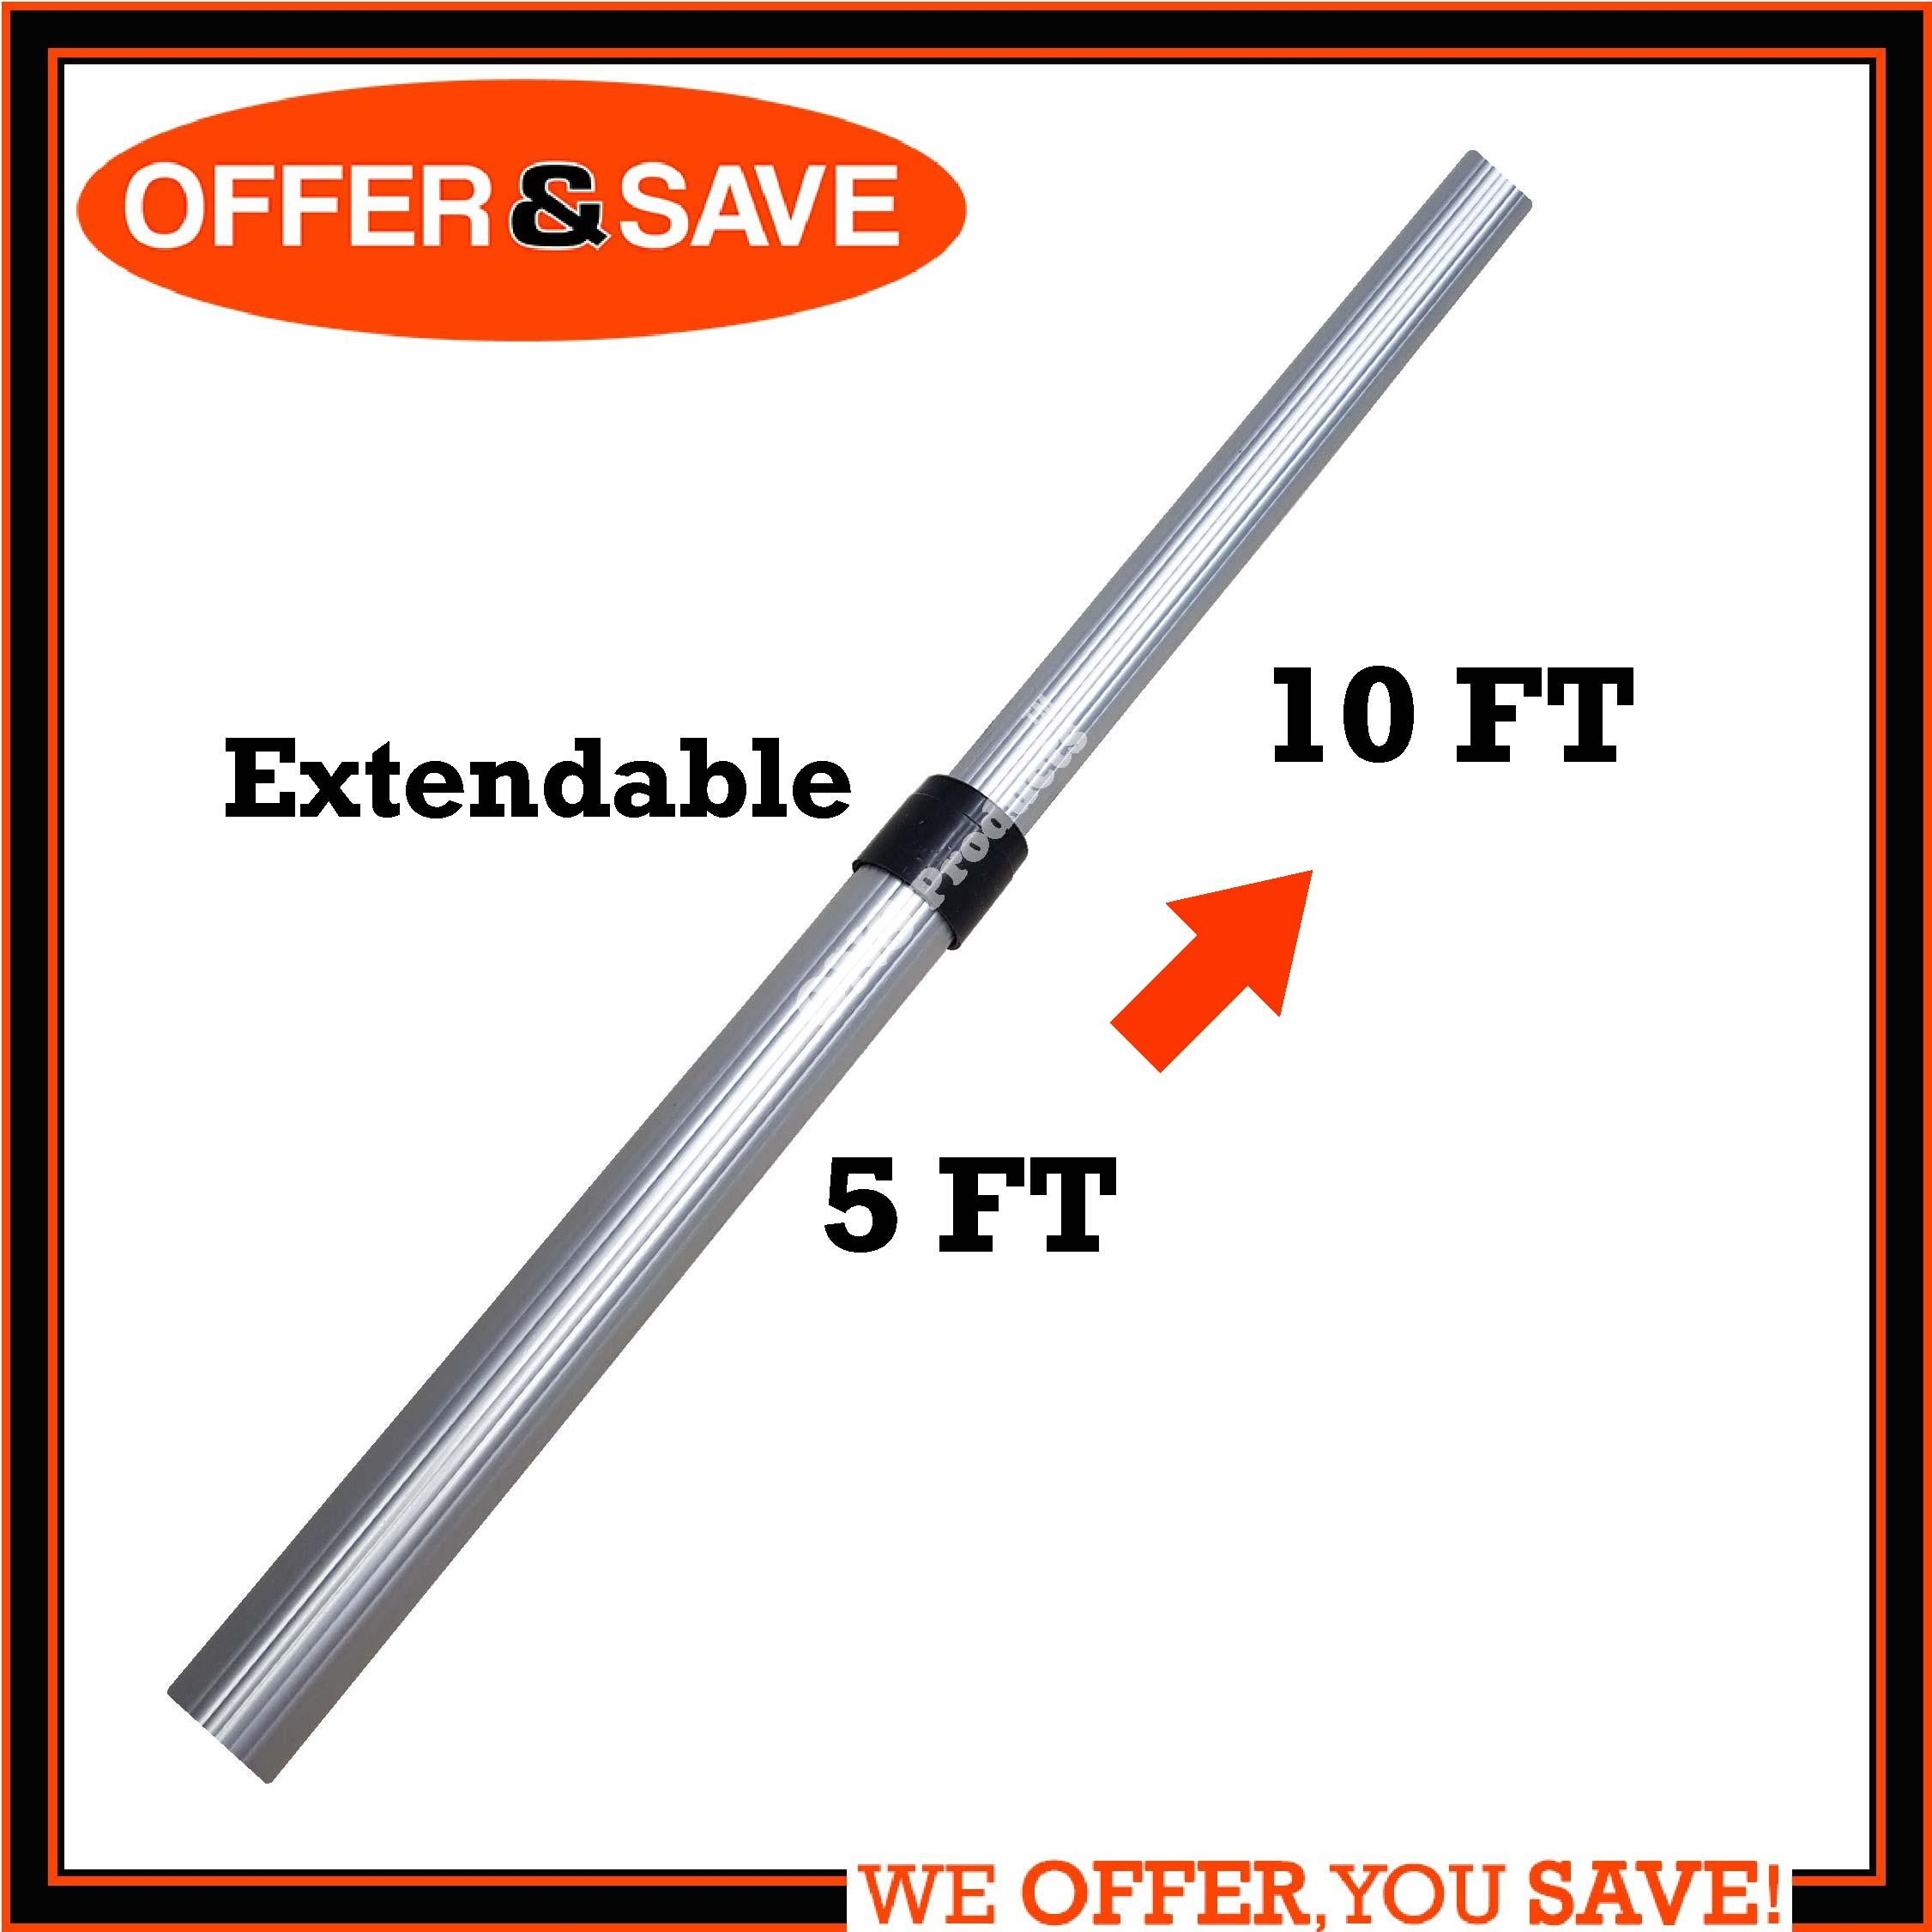 Ons Aluminium Laundry Pole / Bamboo Pole - Extendable By Offer & Save.